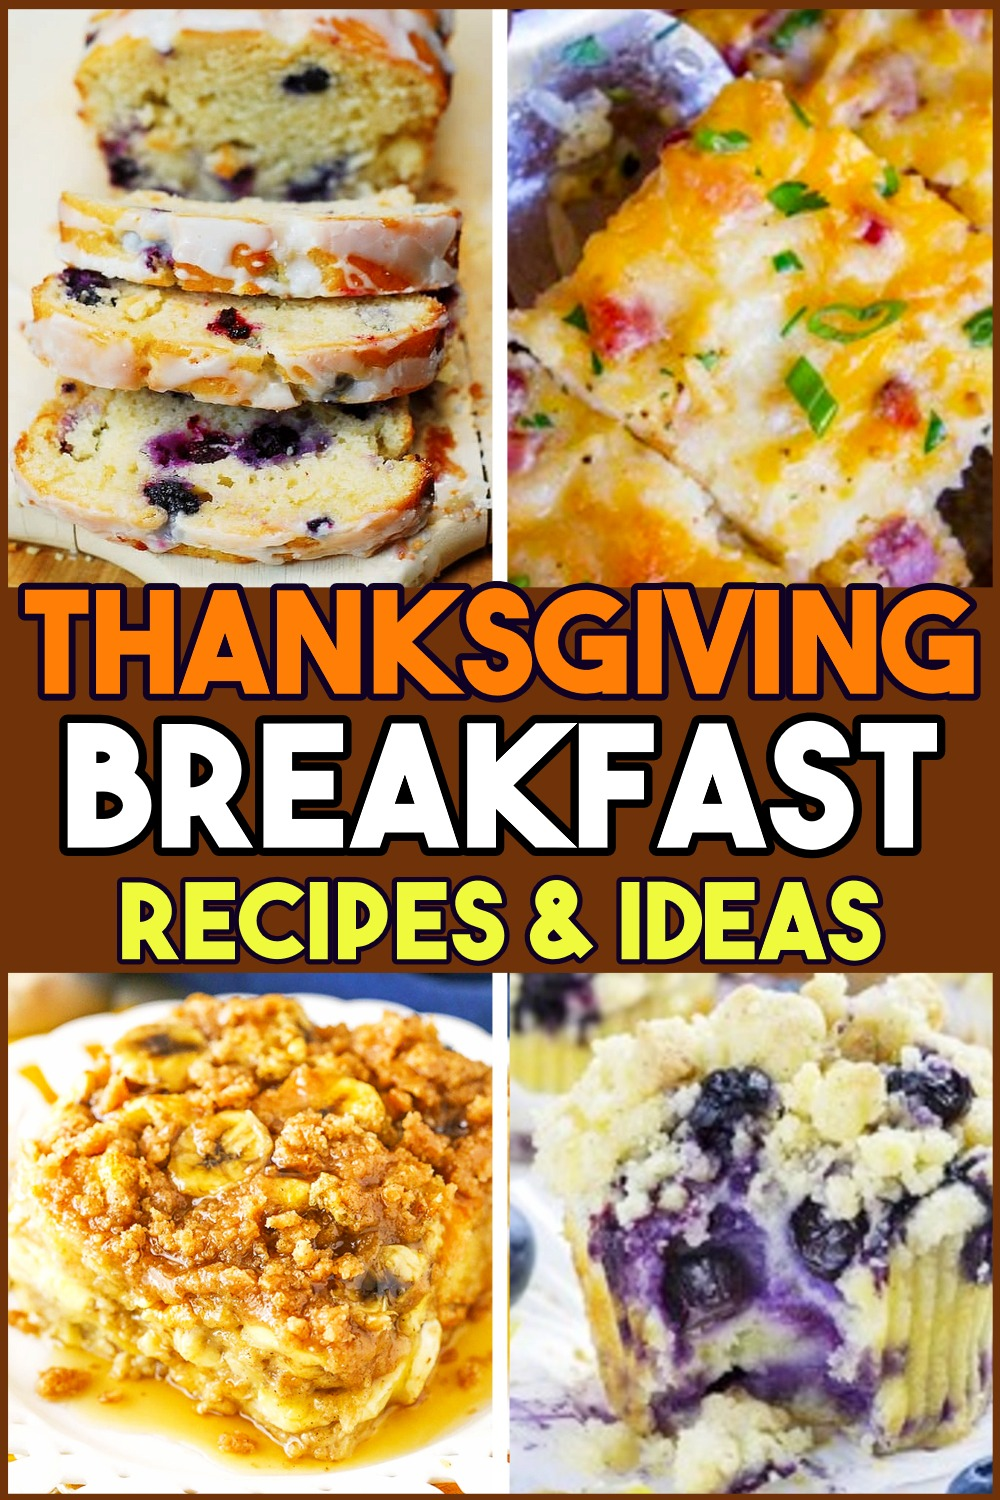 Thanksgiving brunch and Thanksgiving breakfast ideas - fall breakfast ideas, Thanksgiving morning breakfast casserole ideas and fall brunch ideas for Thanksgiving morning or make ahead for Black Friday morning girls weekend of shopping.  Quick and easy sweet Thanksgiving breakfast recipes for two or for a crowd - the french toast casserole is like having dessert for breakfast!